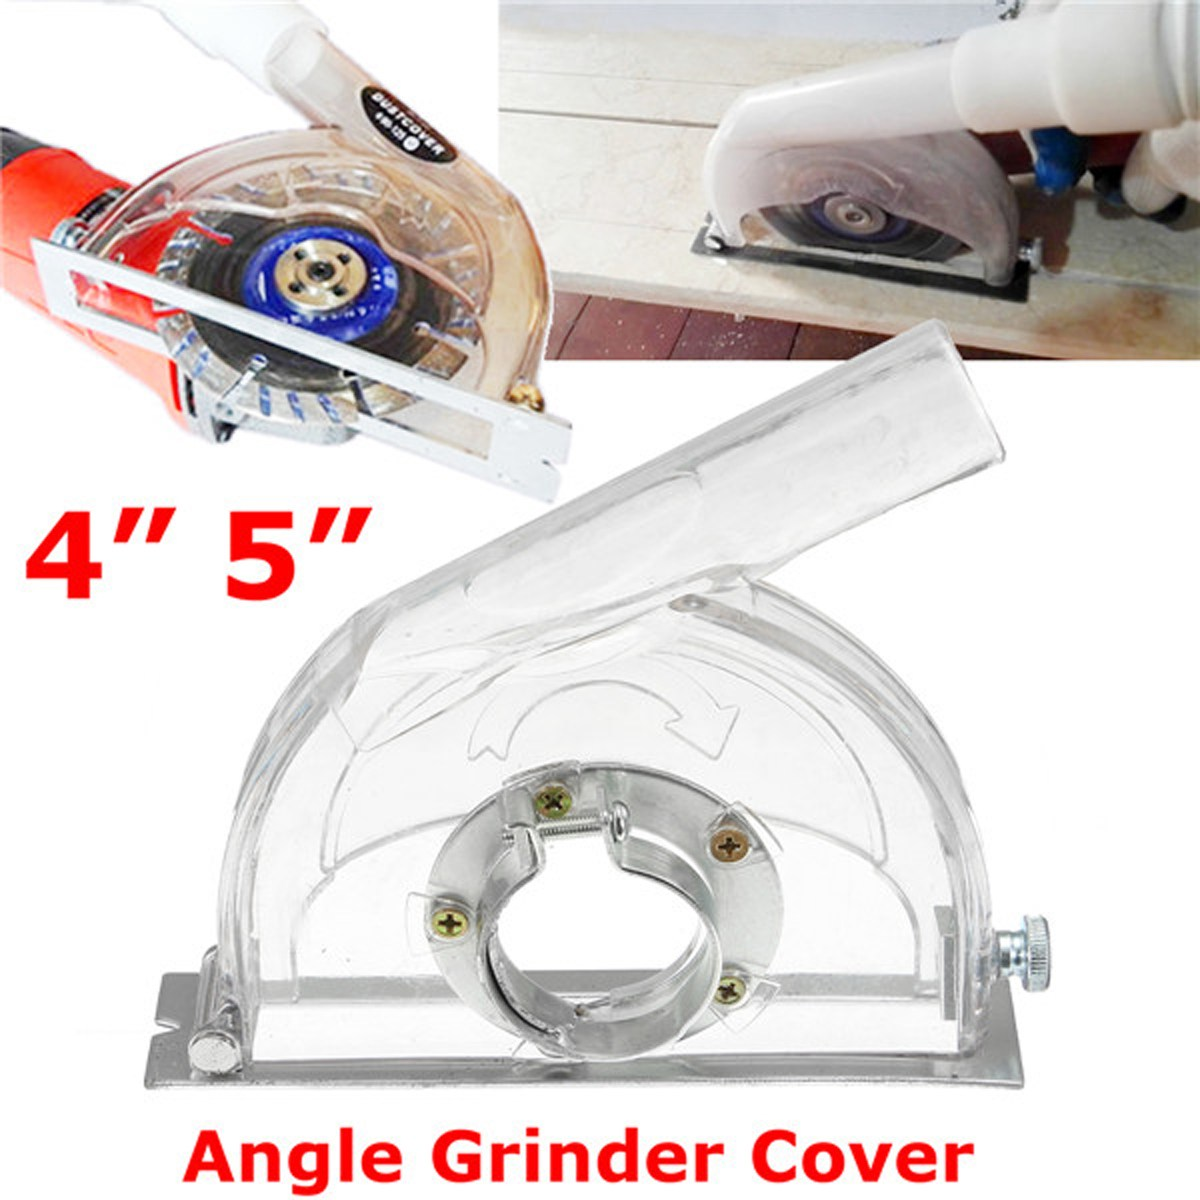 цена на Transparent Grinding Dust Cover For 45 Angle Grinder & 3/4/5 Saw Blades For Hand Grinder Power Tool Accessories